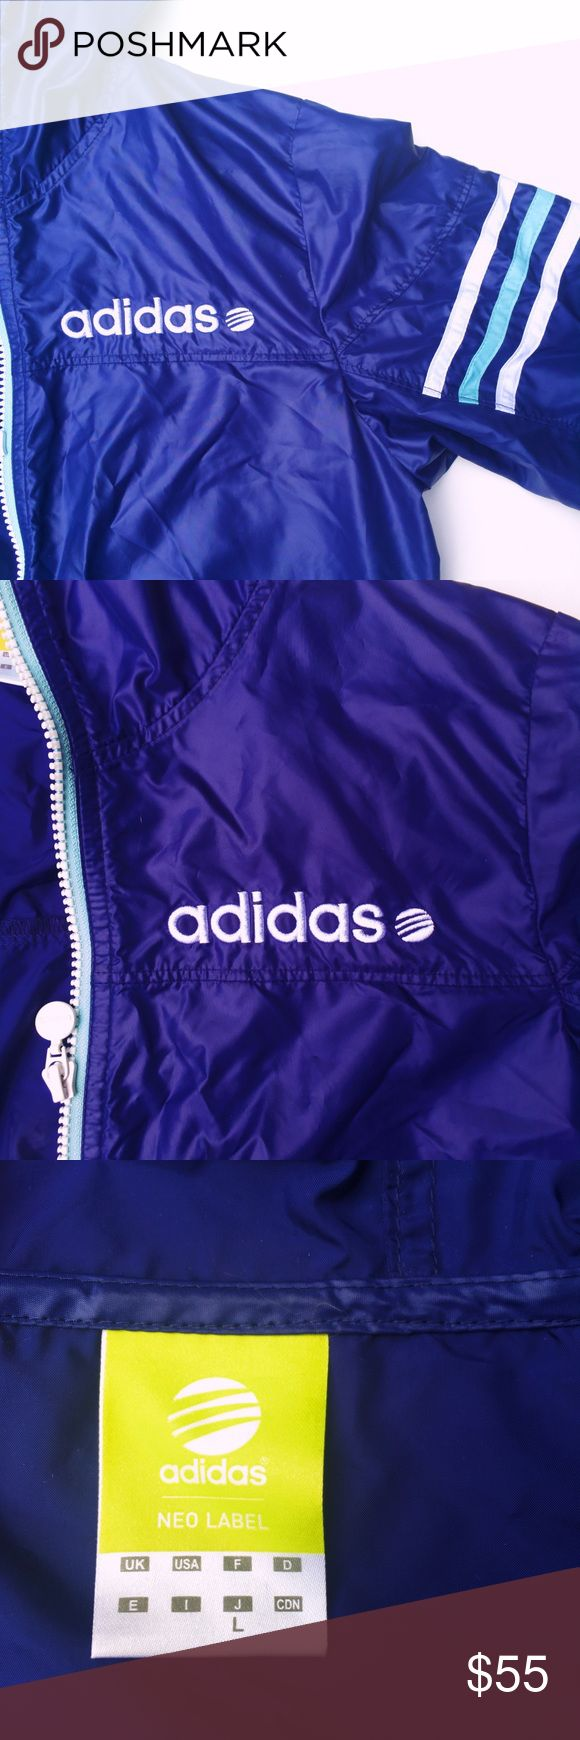 "RARE Adidas WindBreaker Purple, Blue, Pink Neon ⭐️ This gorgeous purple Adidas windbreaker is made of a light material so it is perfect for a cool day! It is purple with pink and blue zippers, a zip up hood, and the sleeves have a blue lining on the edge and the bottom edge has a pink lining.  it also has blue and white stripes on the upper sleeves. it has a neo label and says ""L"" which i think means large, but it fits like a small!  no visible flaws! Adorable!!! Make offers! :) adidas…"